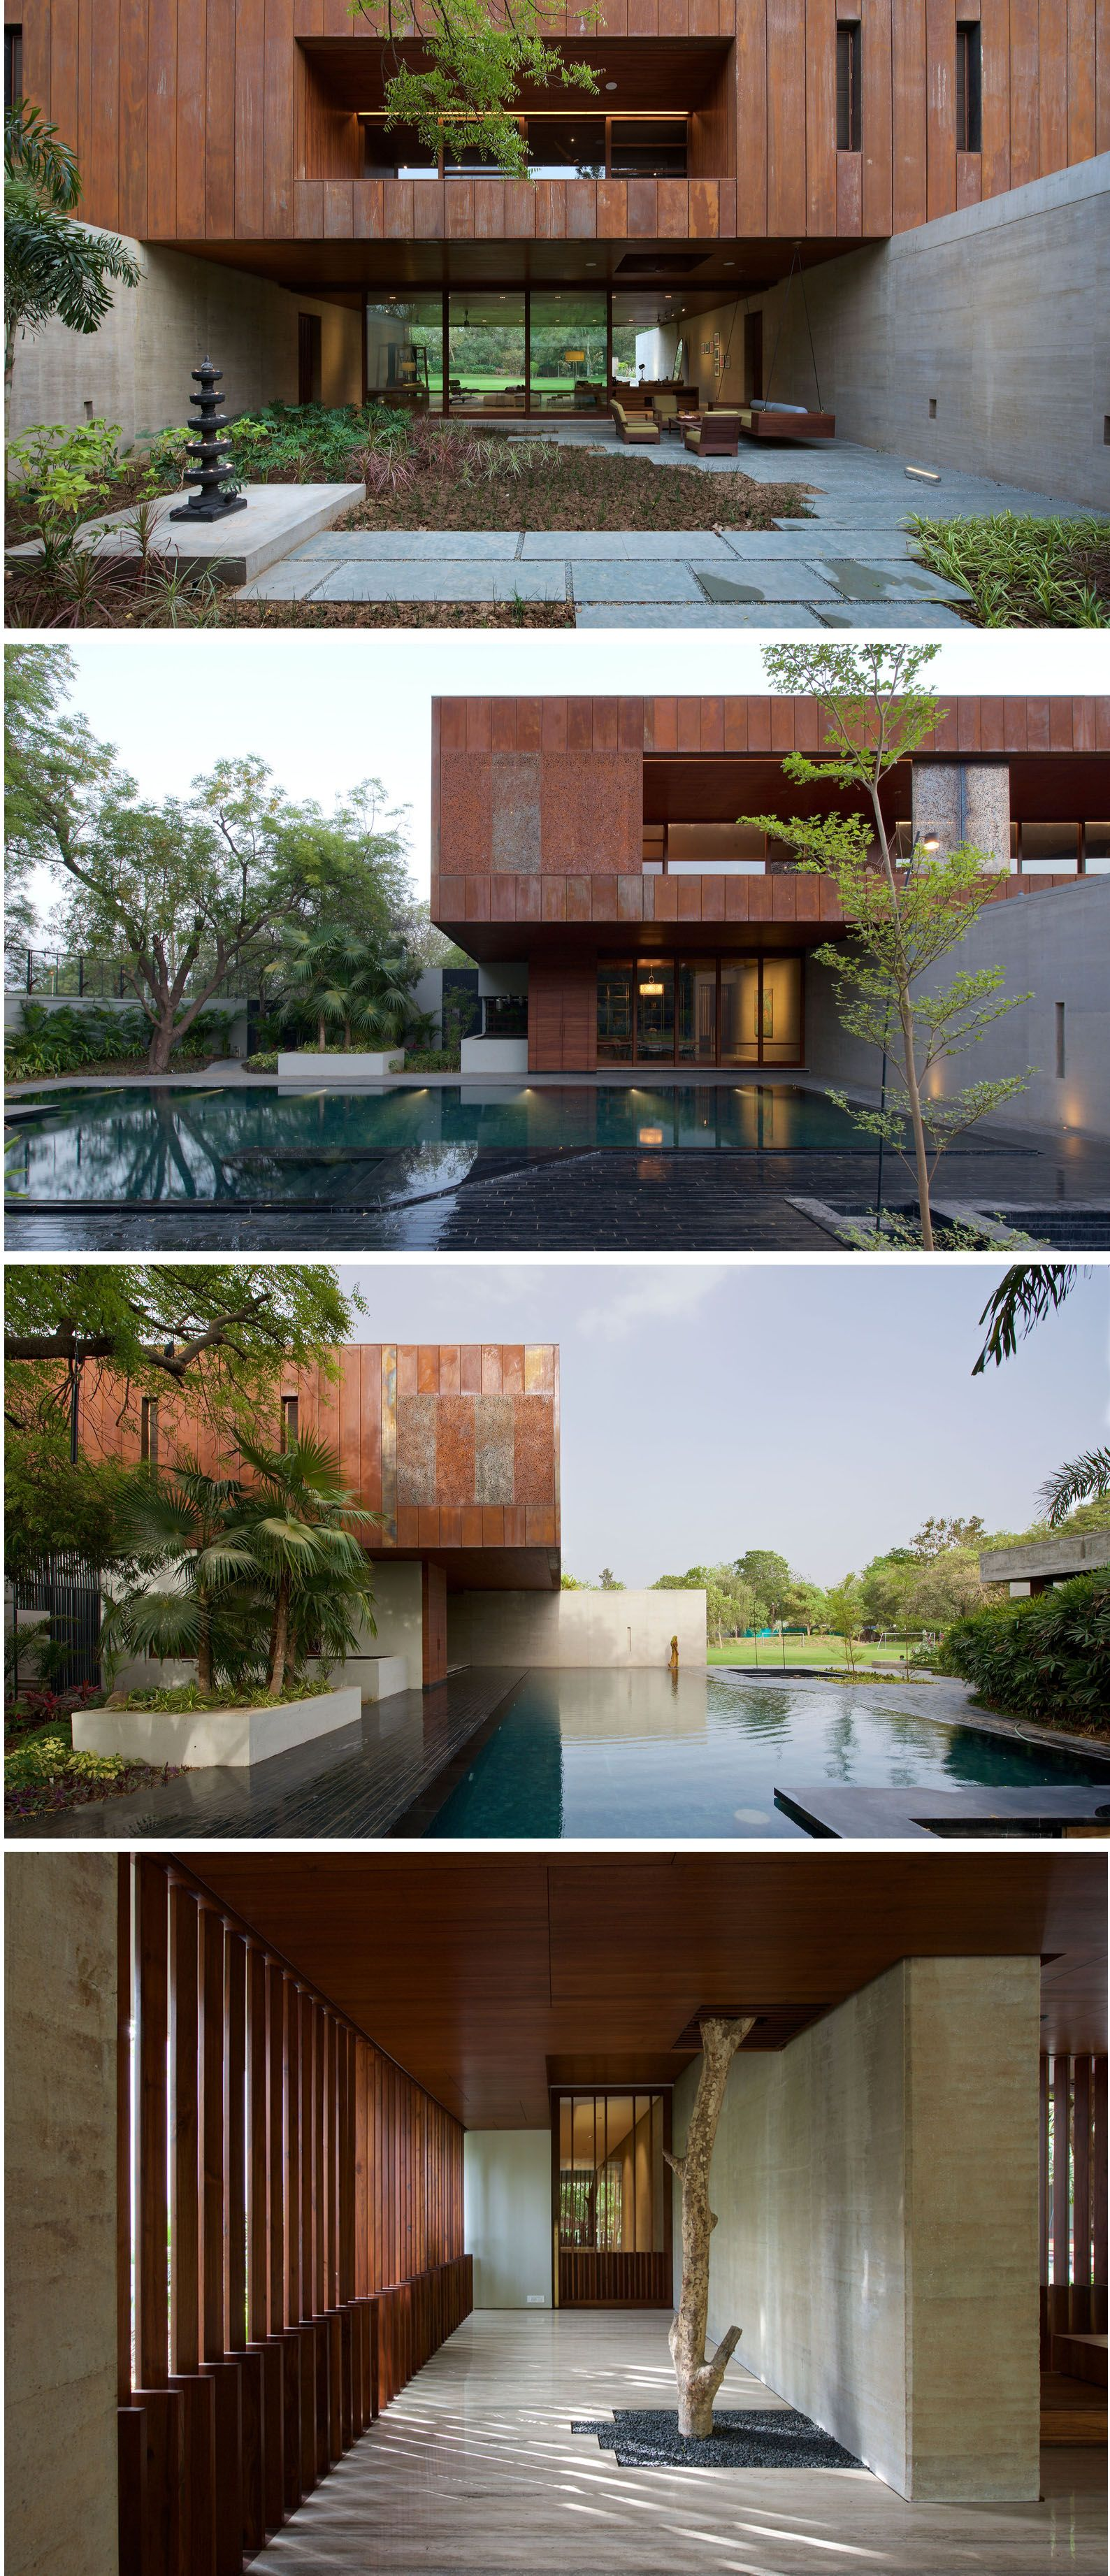 Remarkable Modern House Design in India